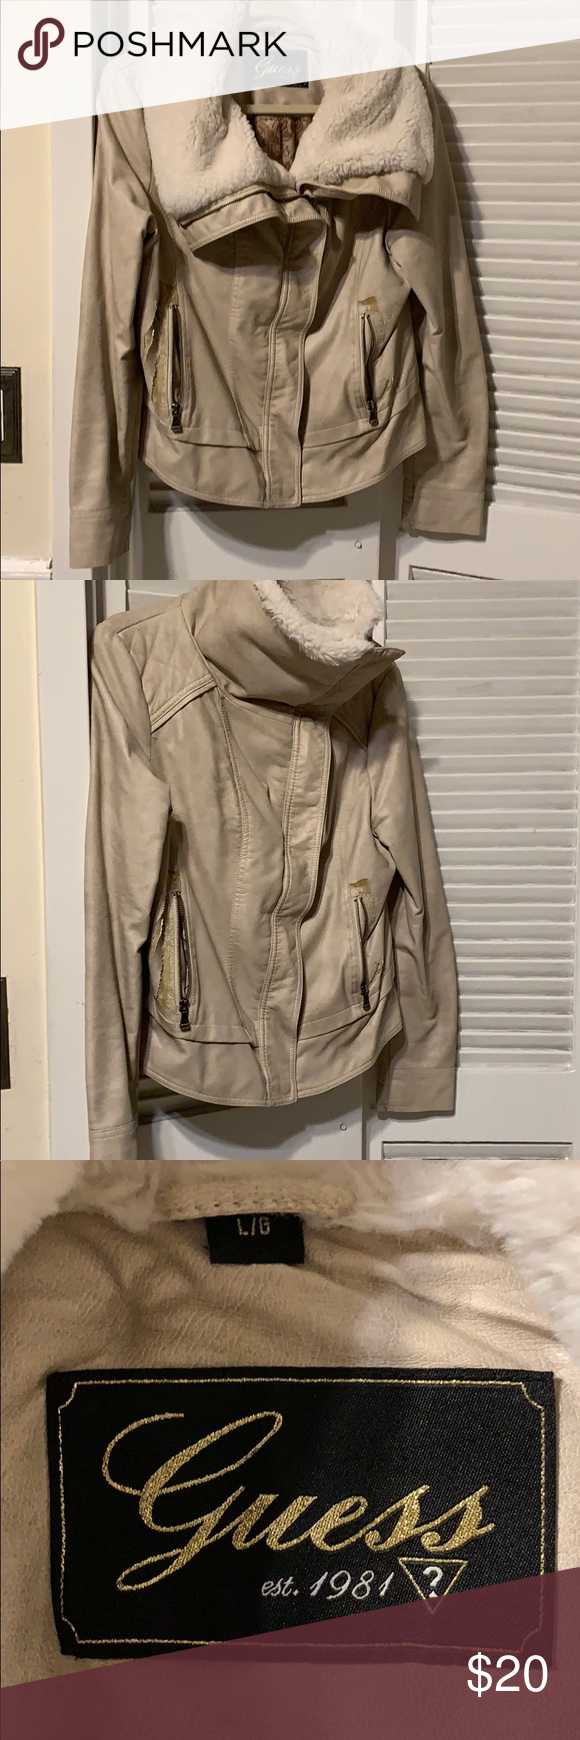 Guess jacket Jackets, Leather look jackets, Faux fur collar